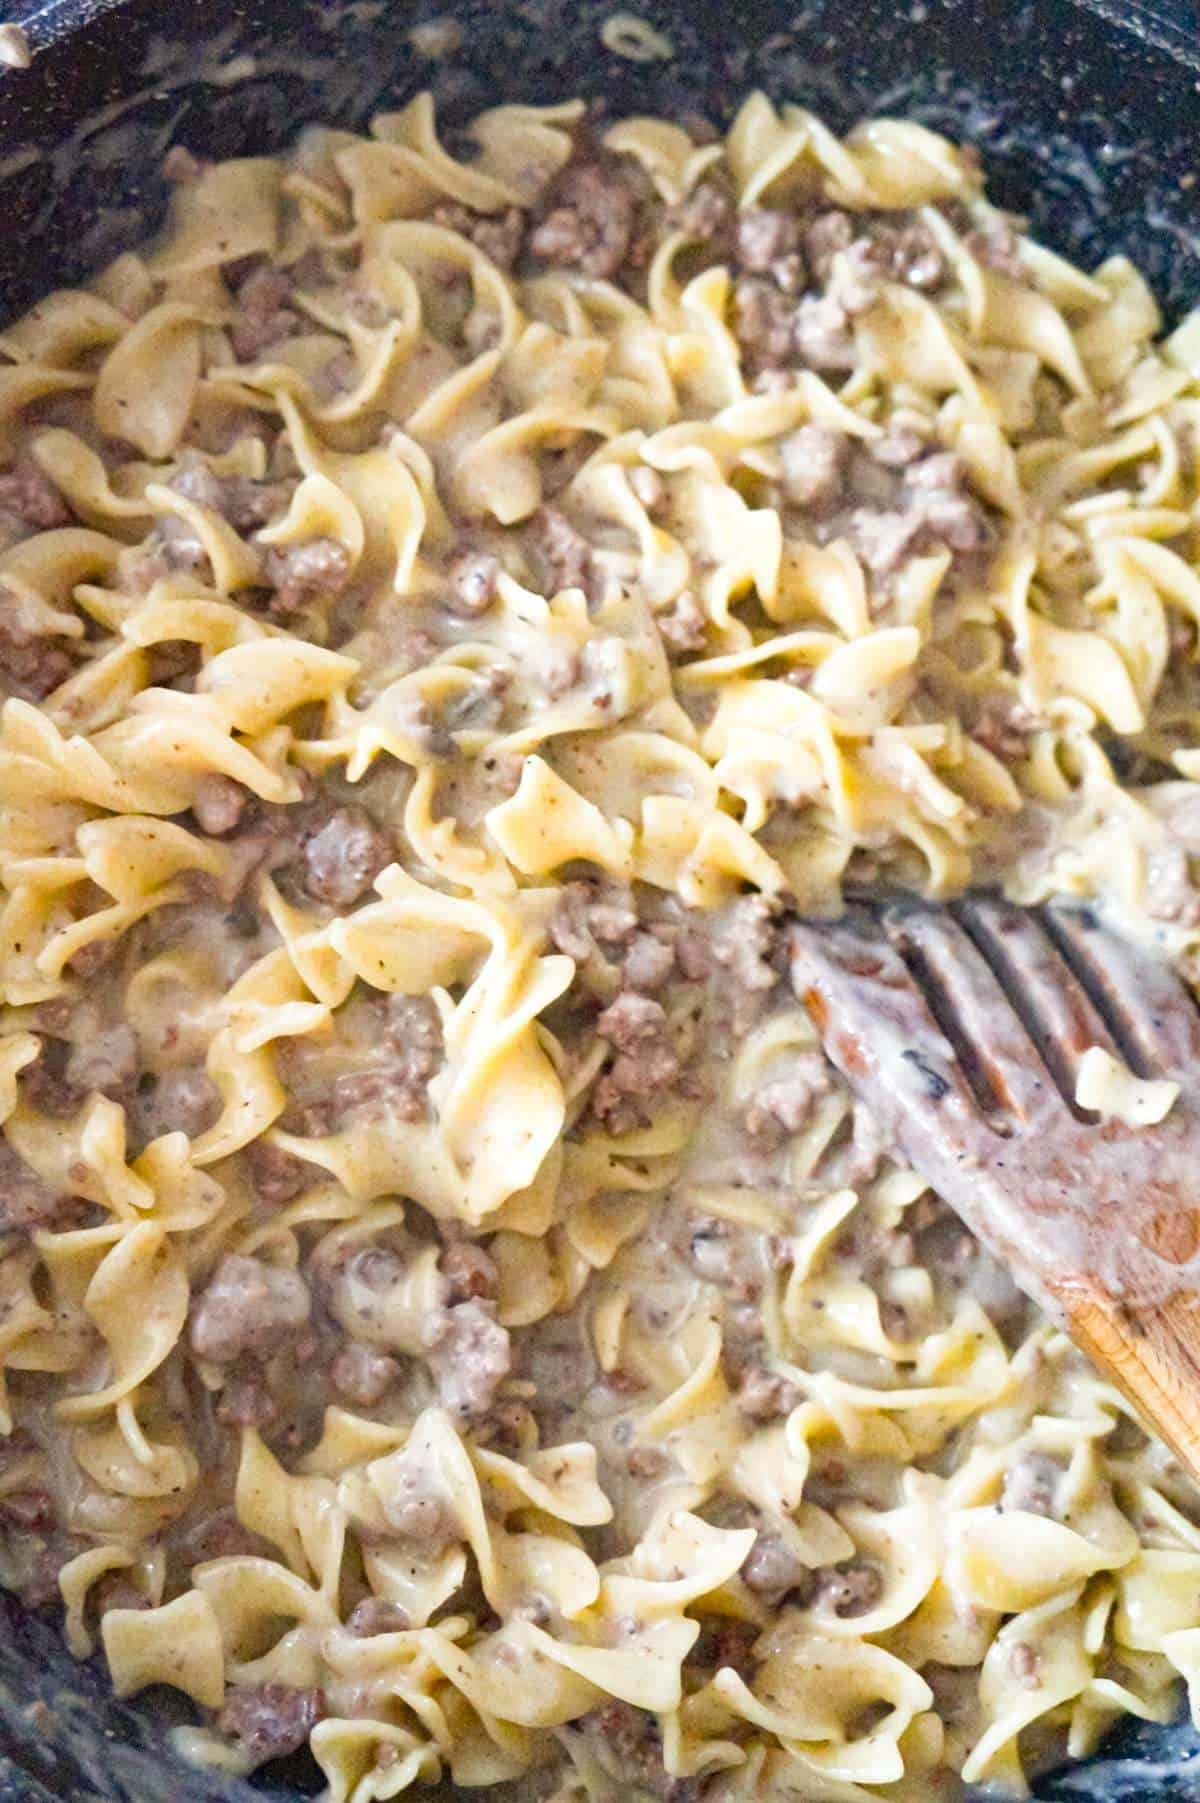 ground beef and egg noodles coated in cream of mushroom soup